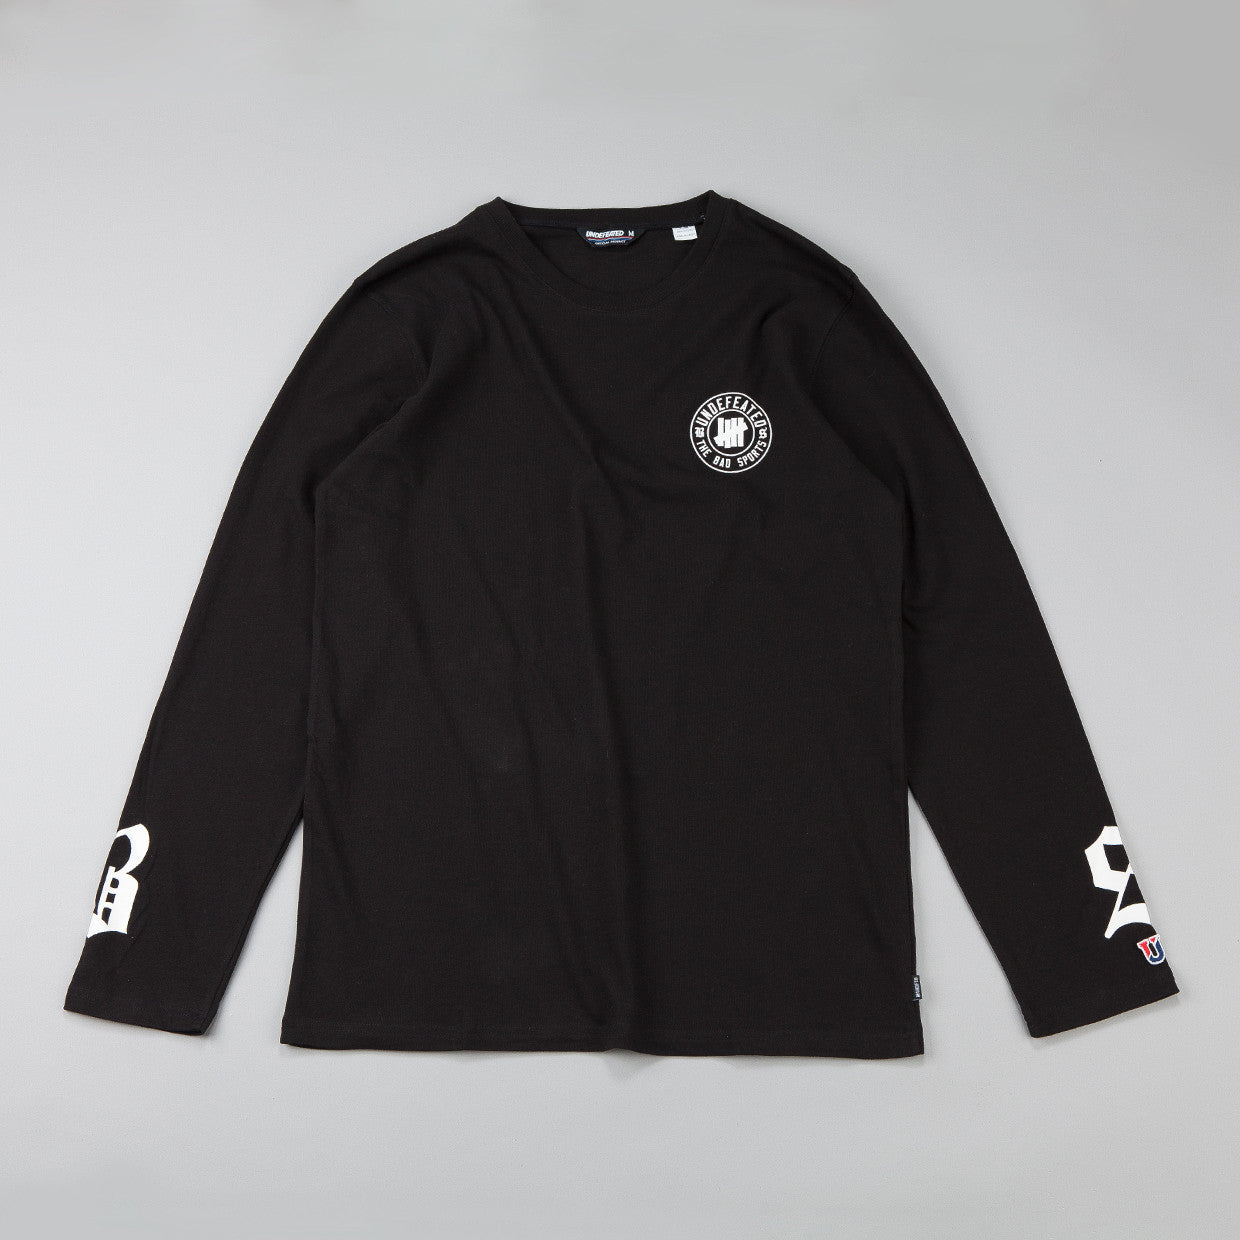 Undefeated BS Long sleeve t-shirt Black